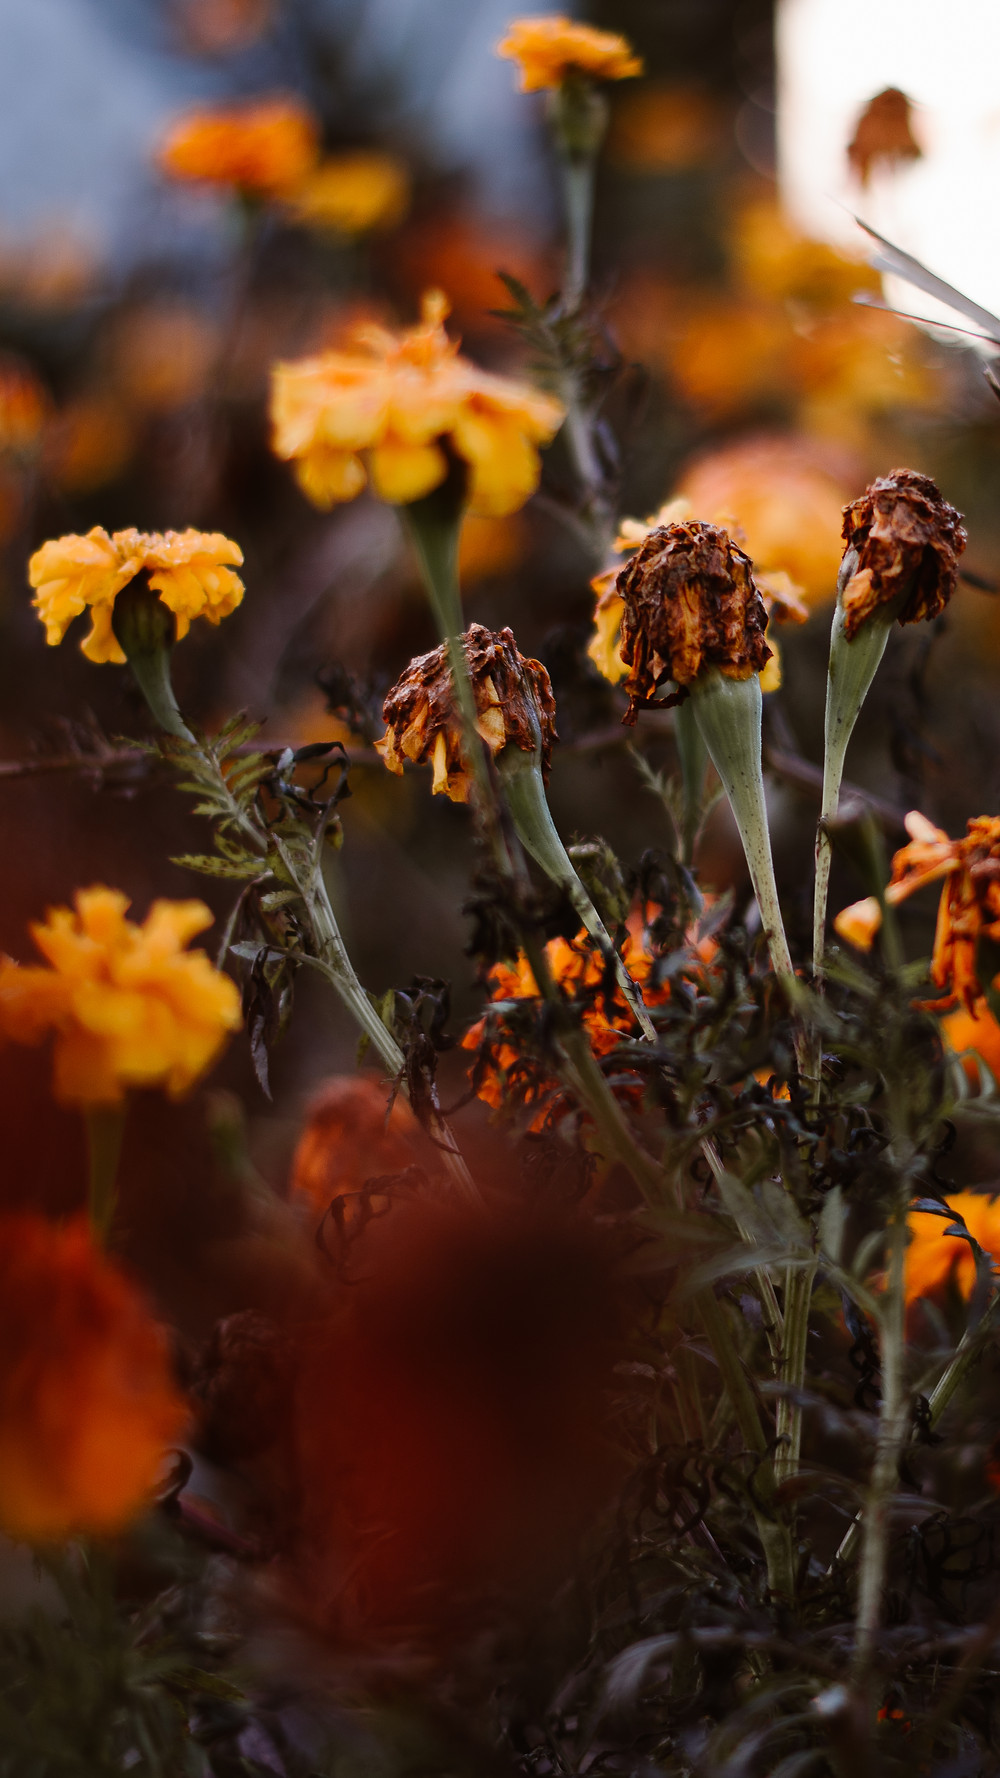 dying marigolds free phone wallpaper download